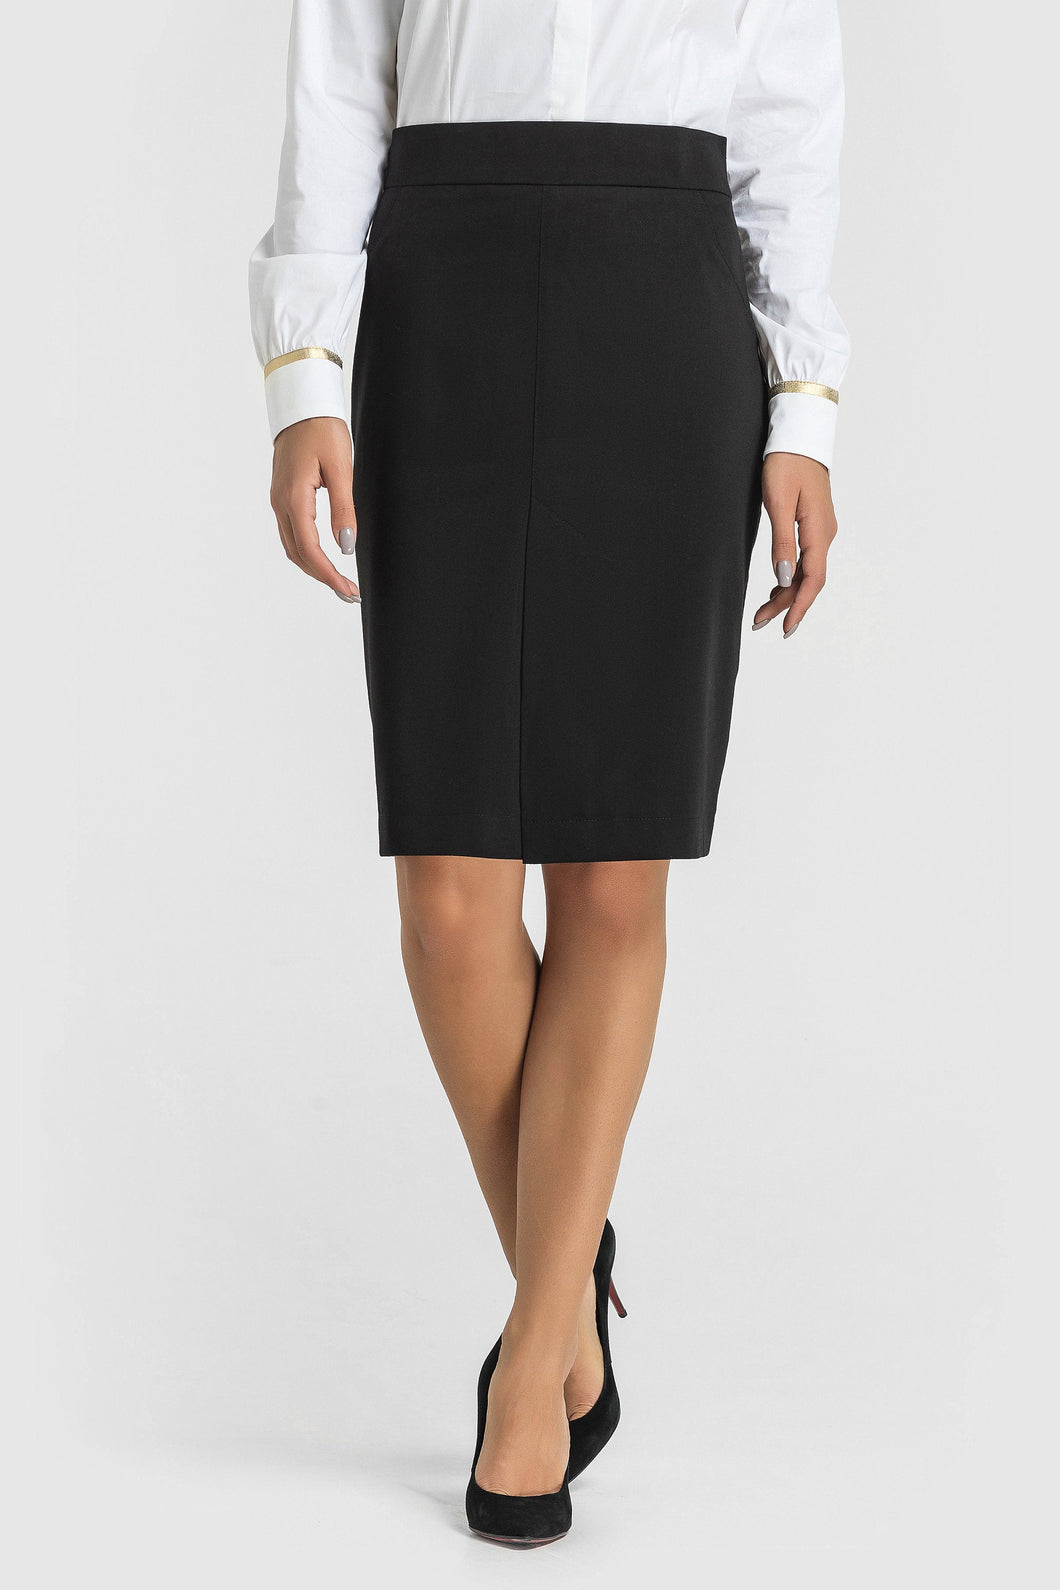 Front Slit Black Pencil Skirt women